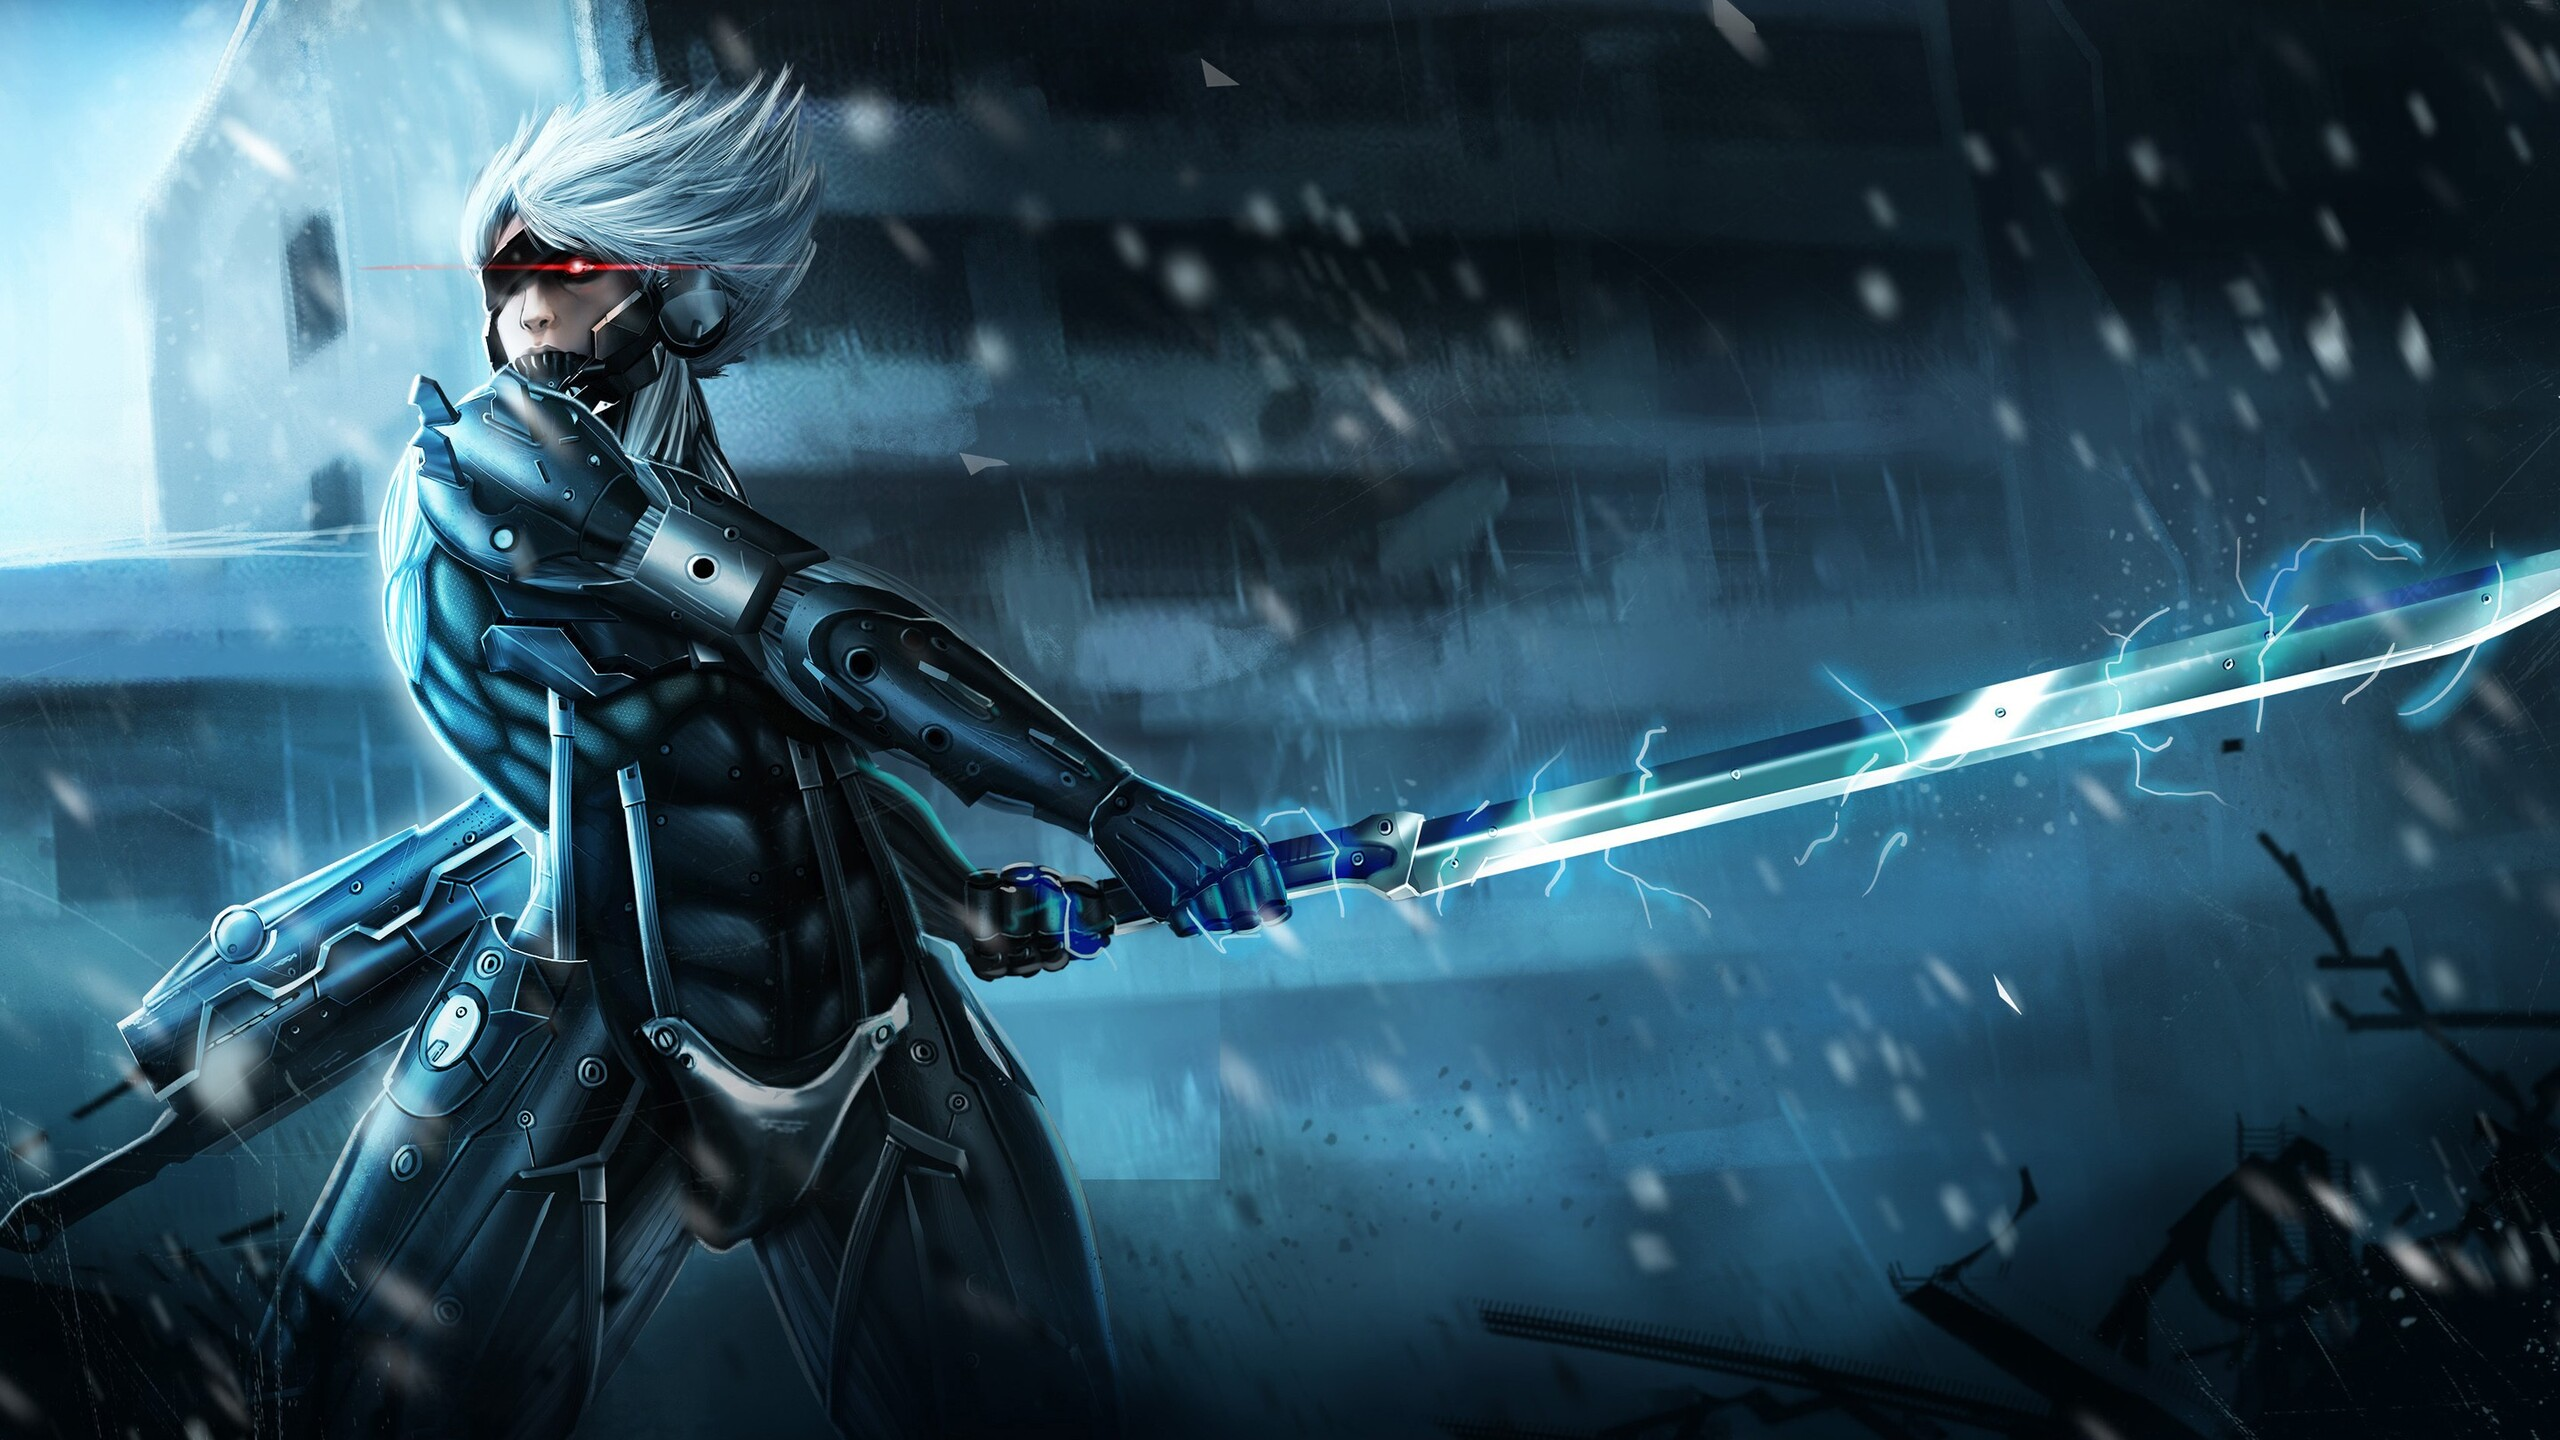 42 Hd Raiden Wallpaper On Wallpapersafari: 2560x1440 Metal Gear Rising Raiden 1440P Resolution HD 4k